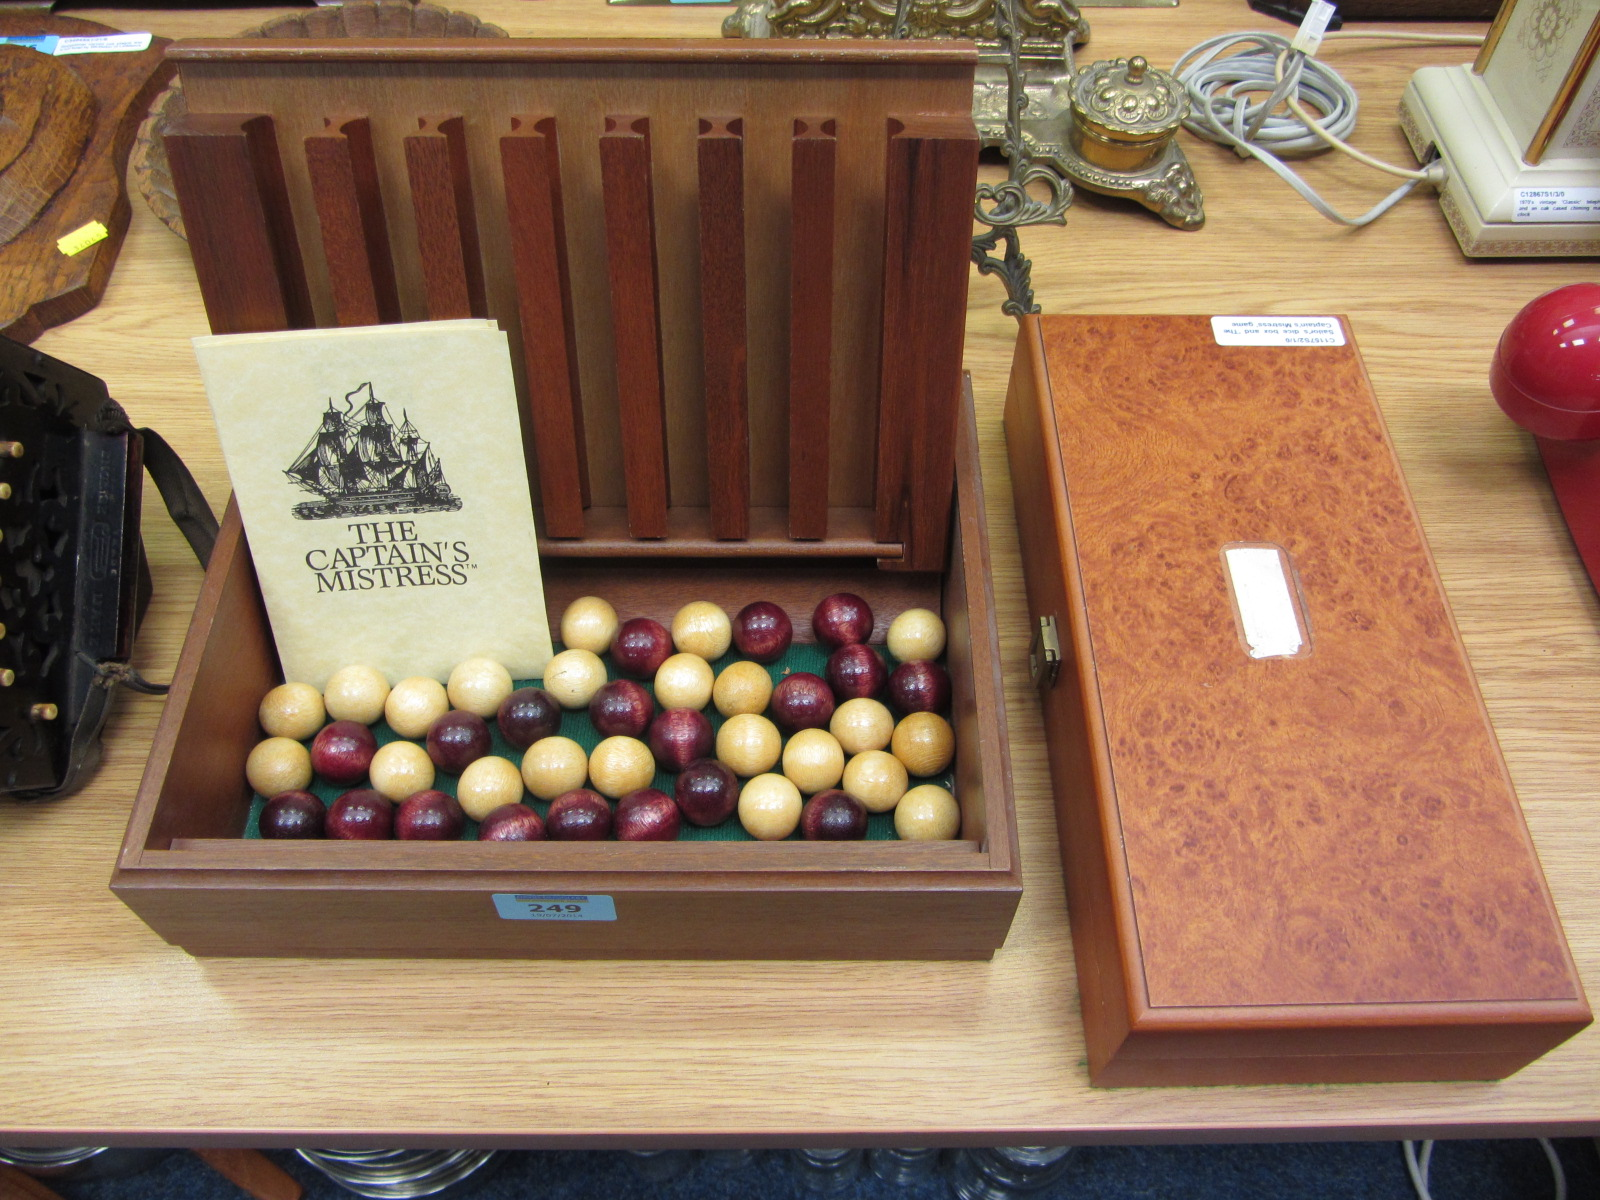 Lot 249 - Sailor's dice box and 'The Captain's Mistress' game